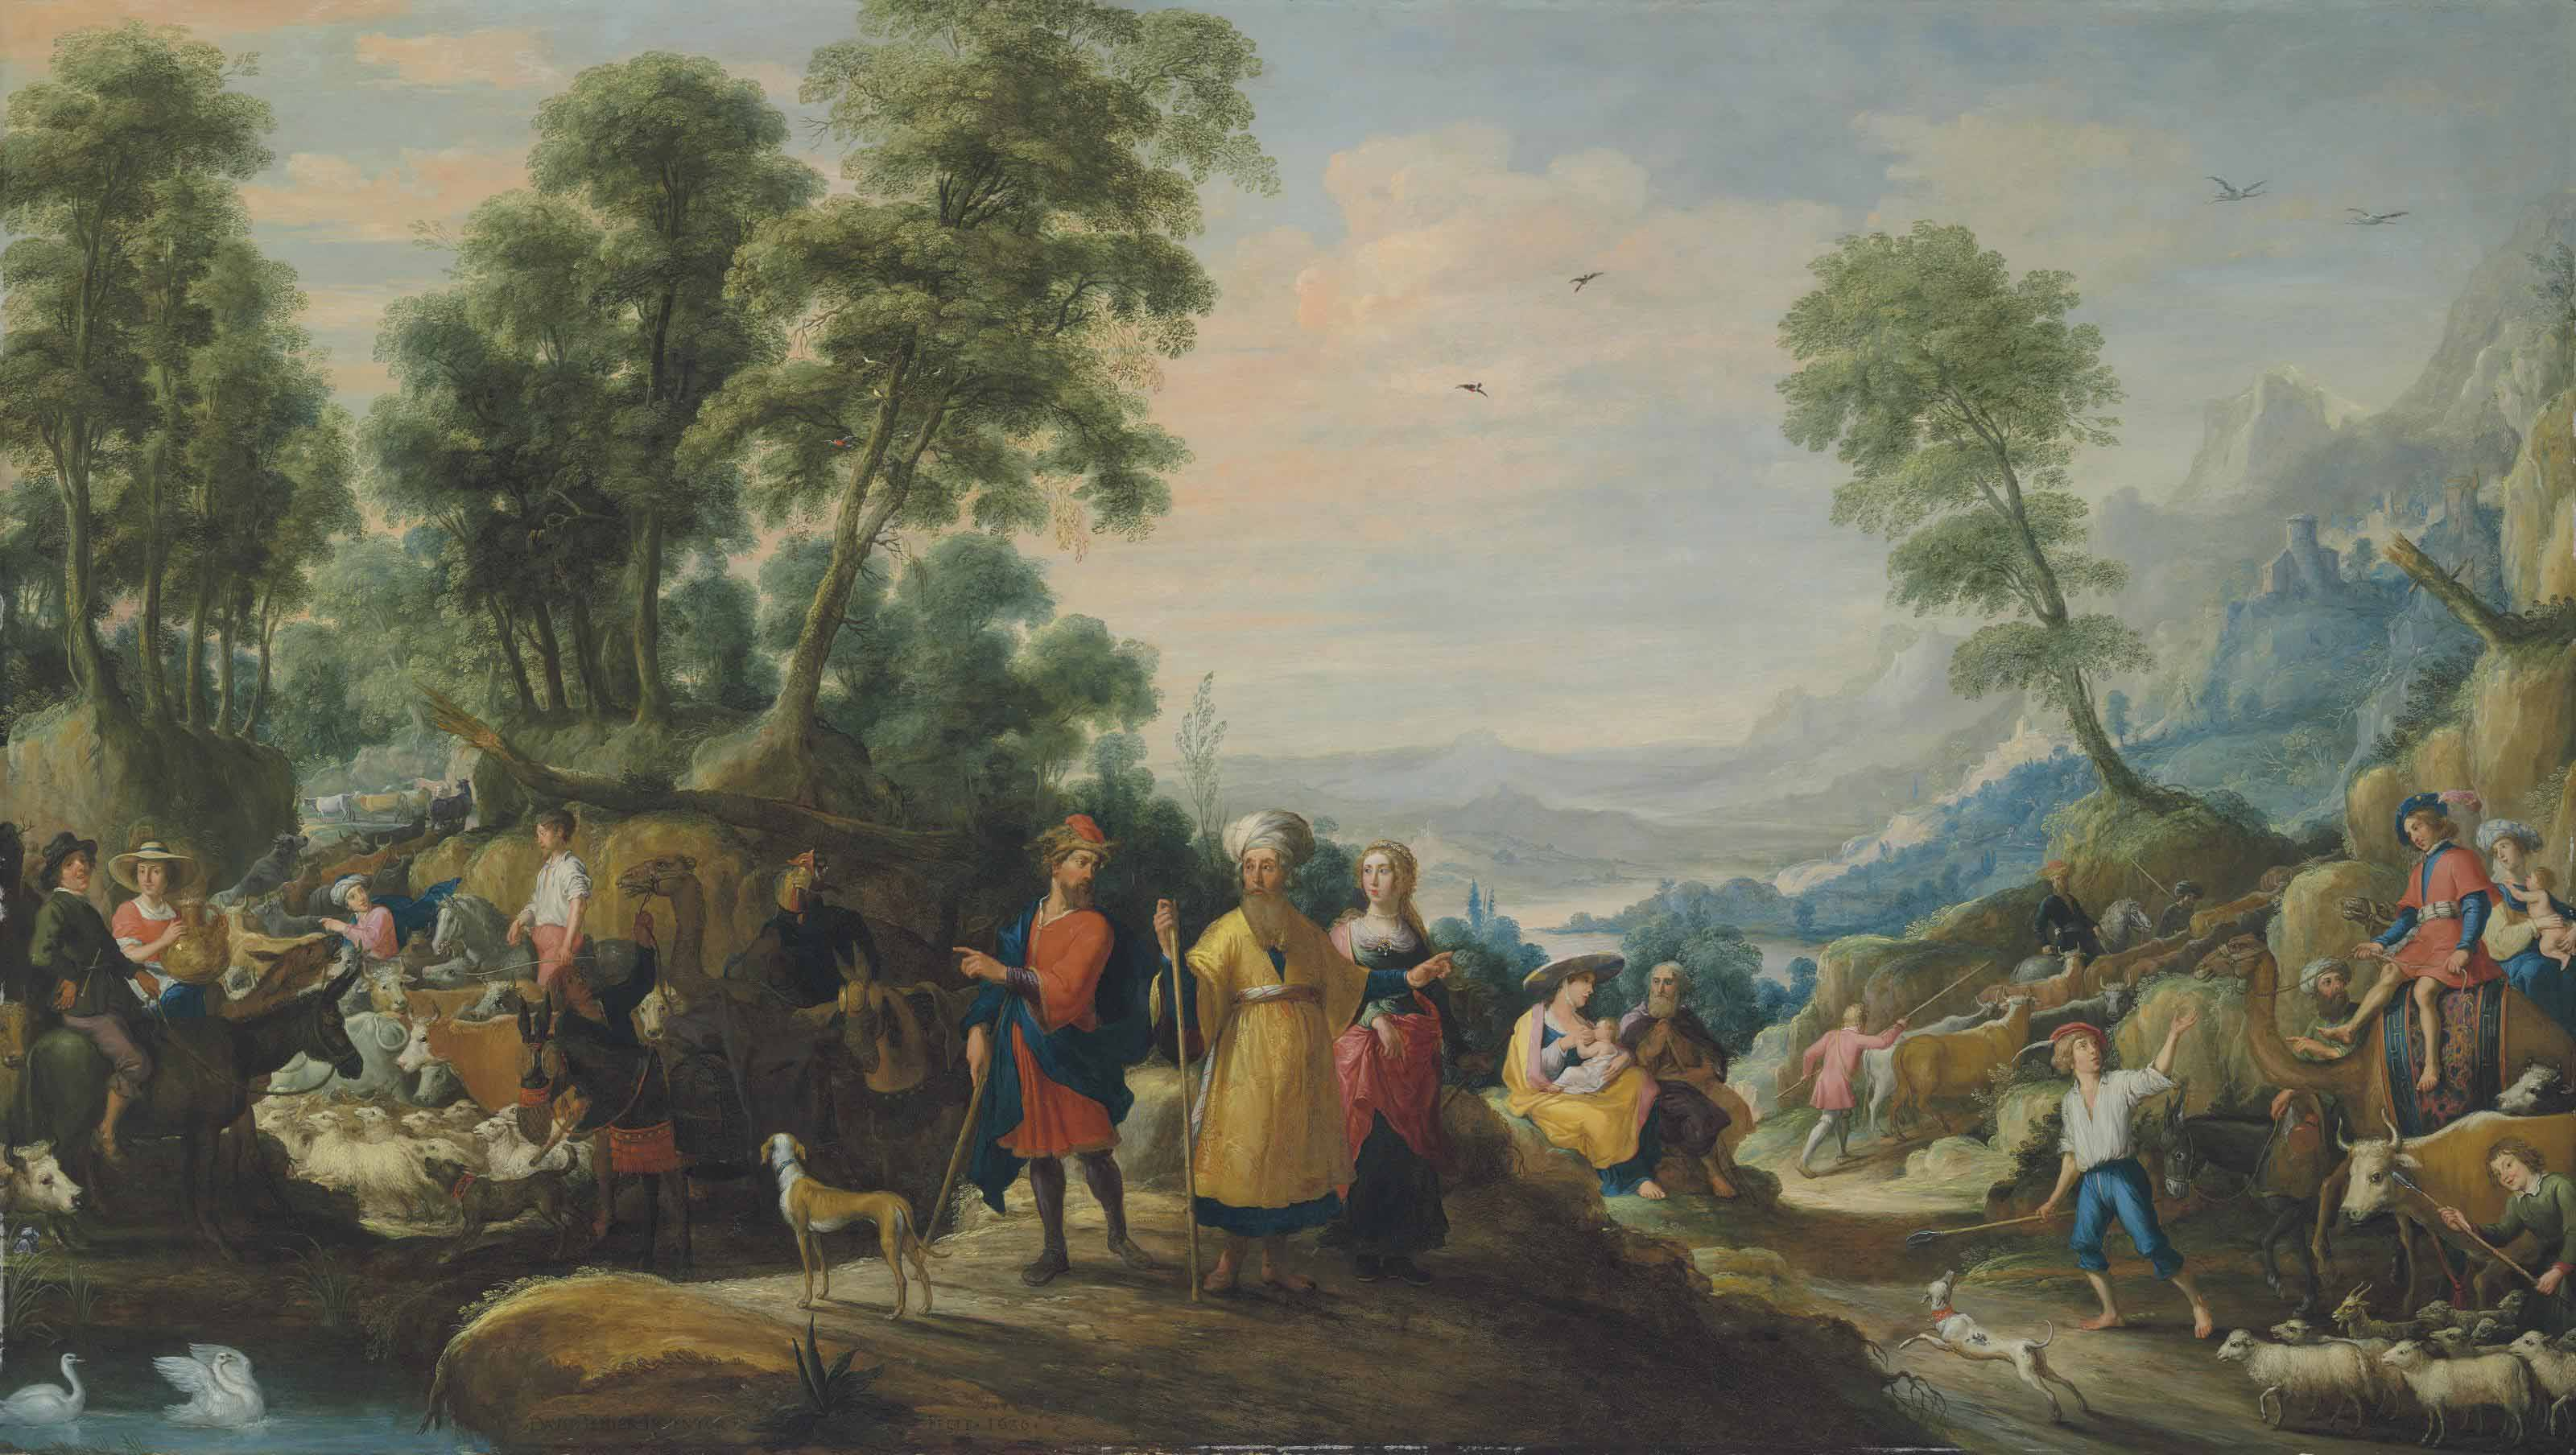 The Meeting of Jacob and Laban